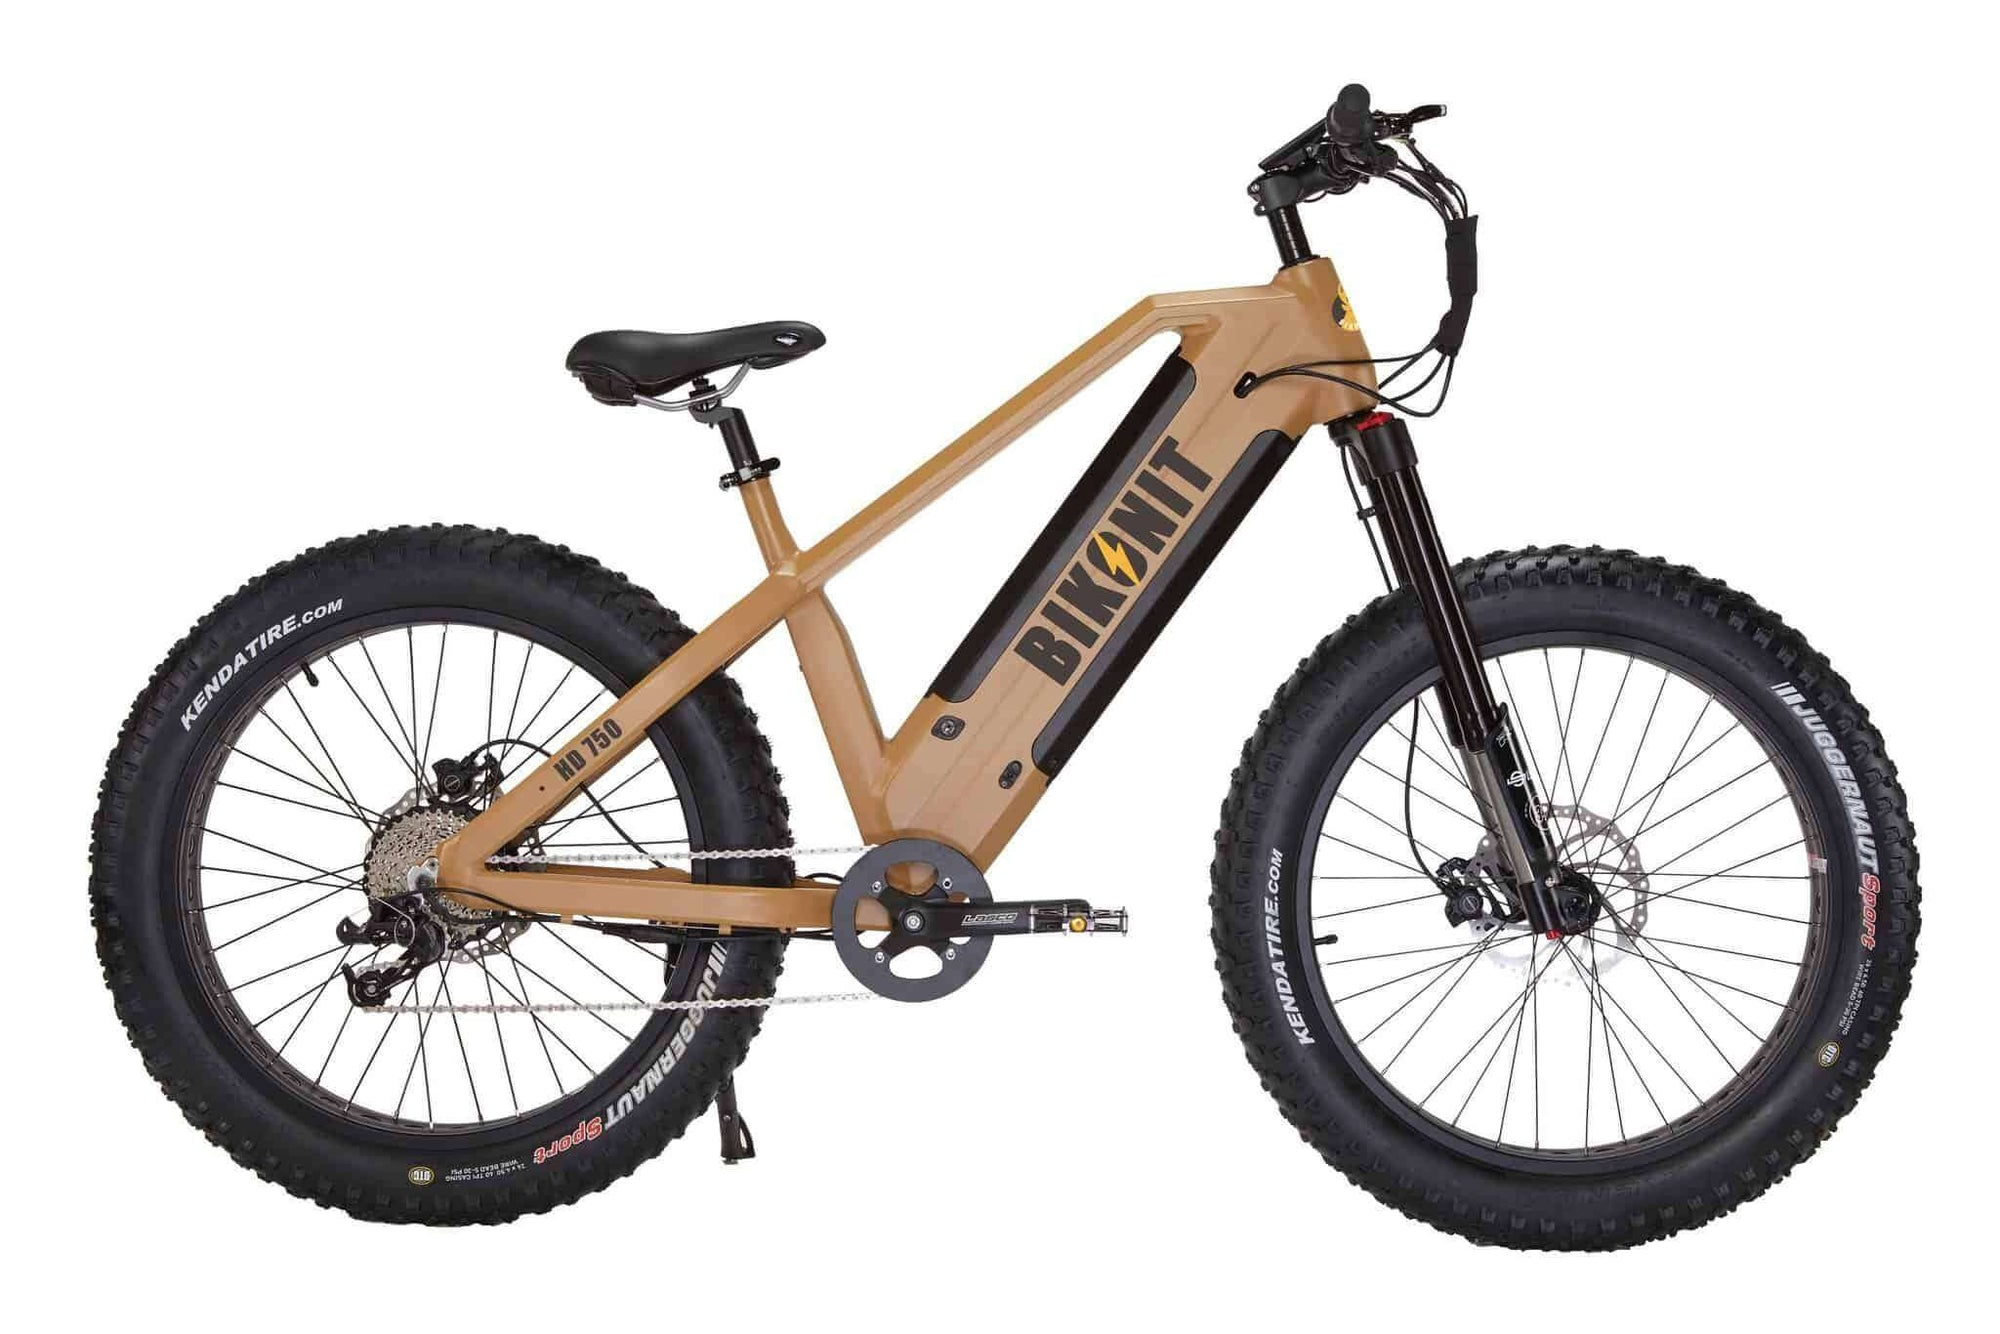 Bikonit HD 750 All-Terrain Hub-Drive Hunting & Fishing Fat Tire Electric Bike Sand Yellow